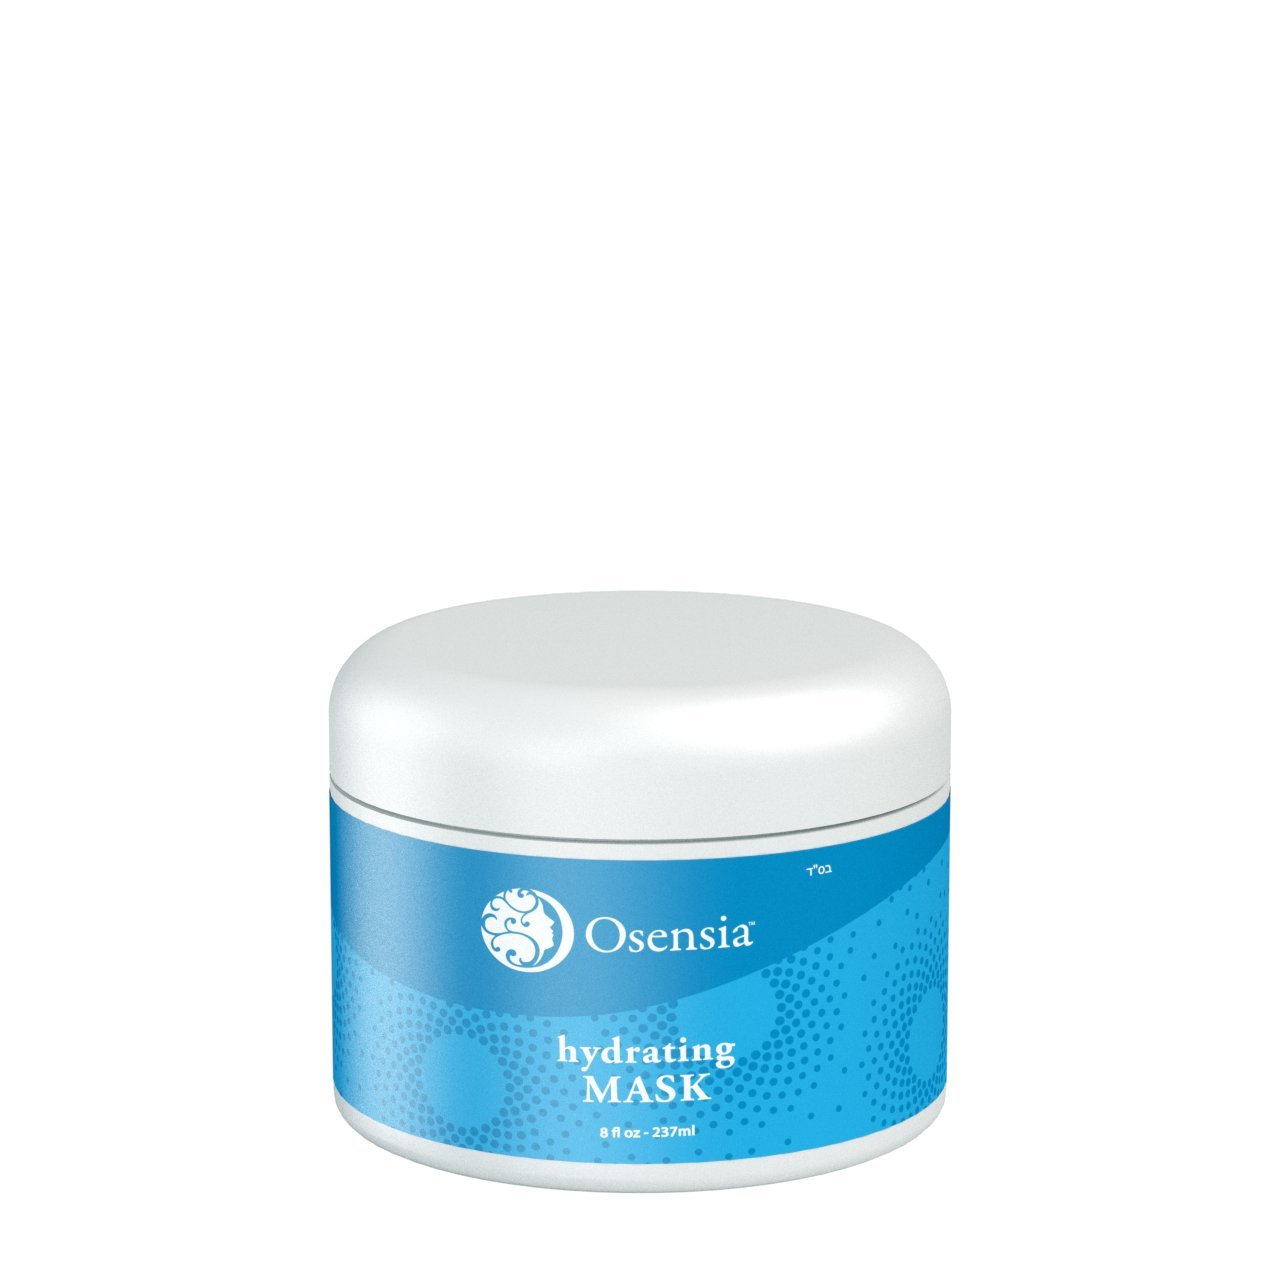 Argan Oil Hair Mask for Dry Damaged Hair – Keratin Complex Deep Conditioner for Color Treated Hair – Sulfate Free Hair Treatment to Strengthen, Repair, Hydrate, and Protect Dull Hair by Osensia (8oz)